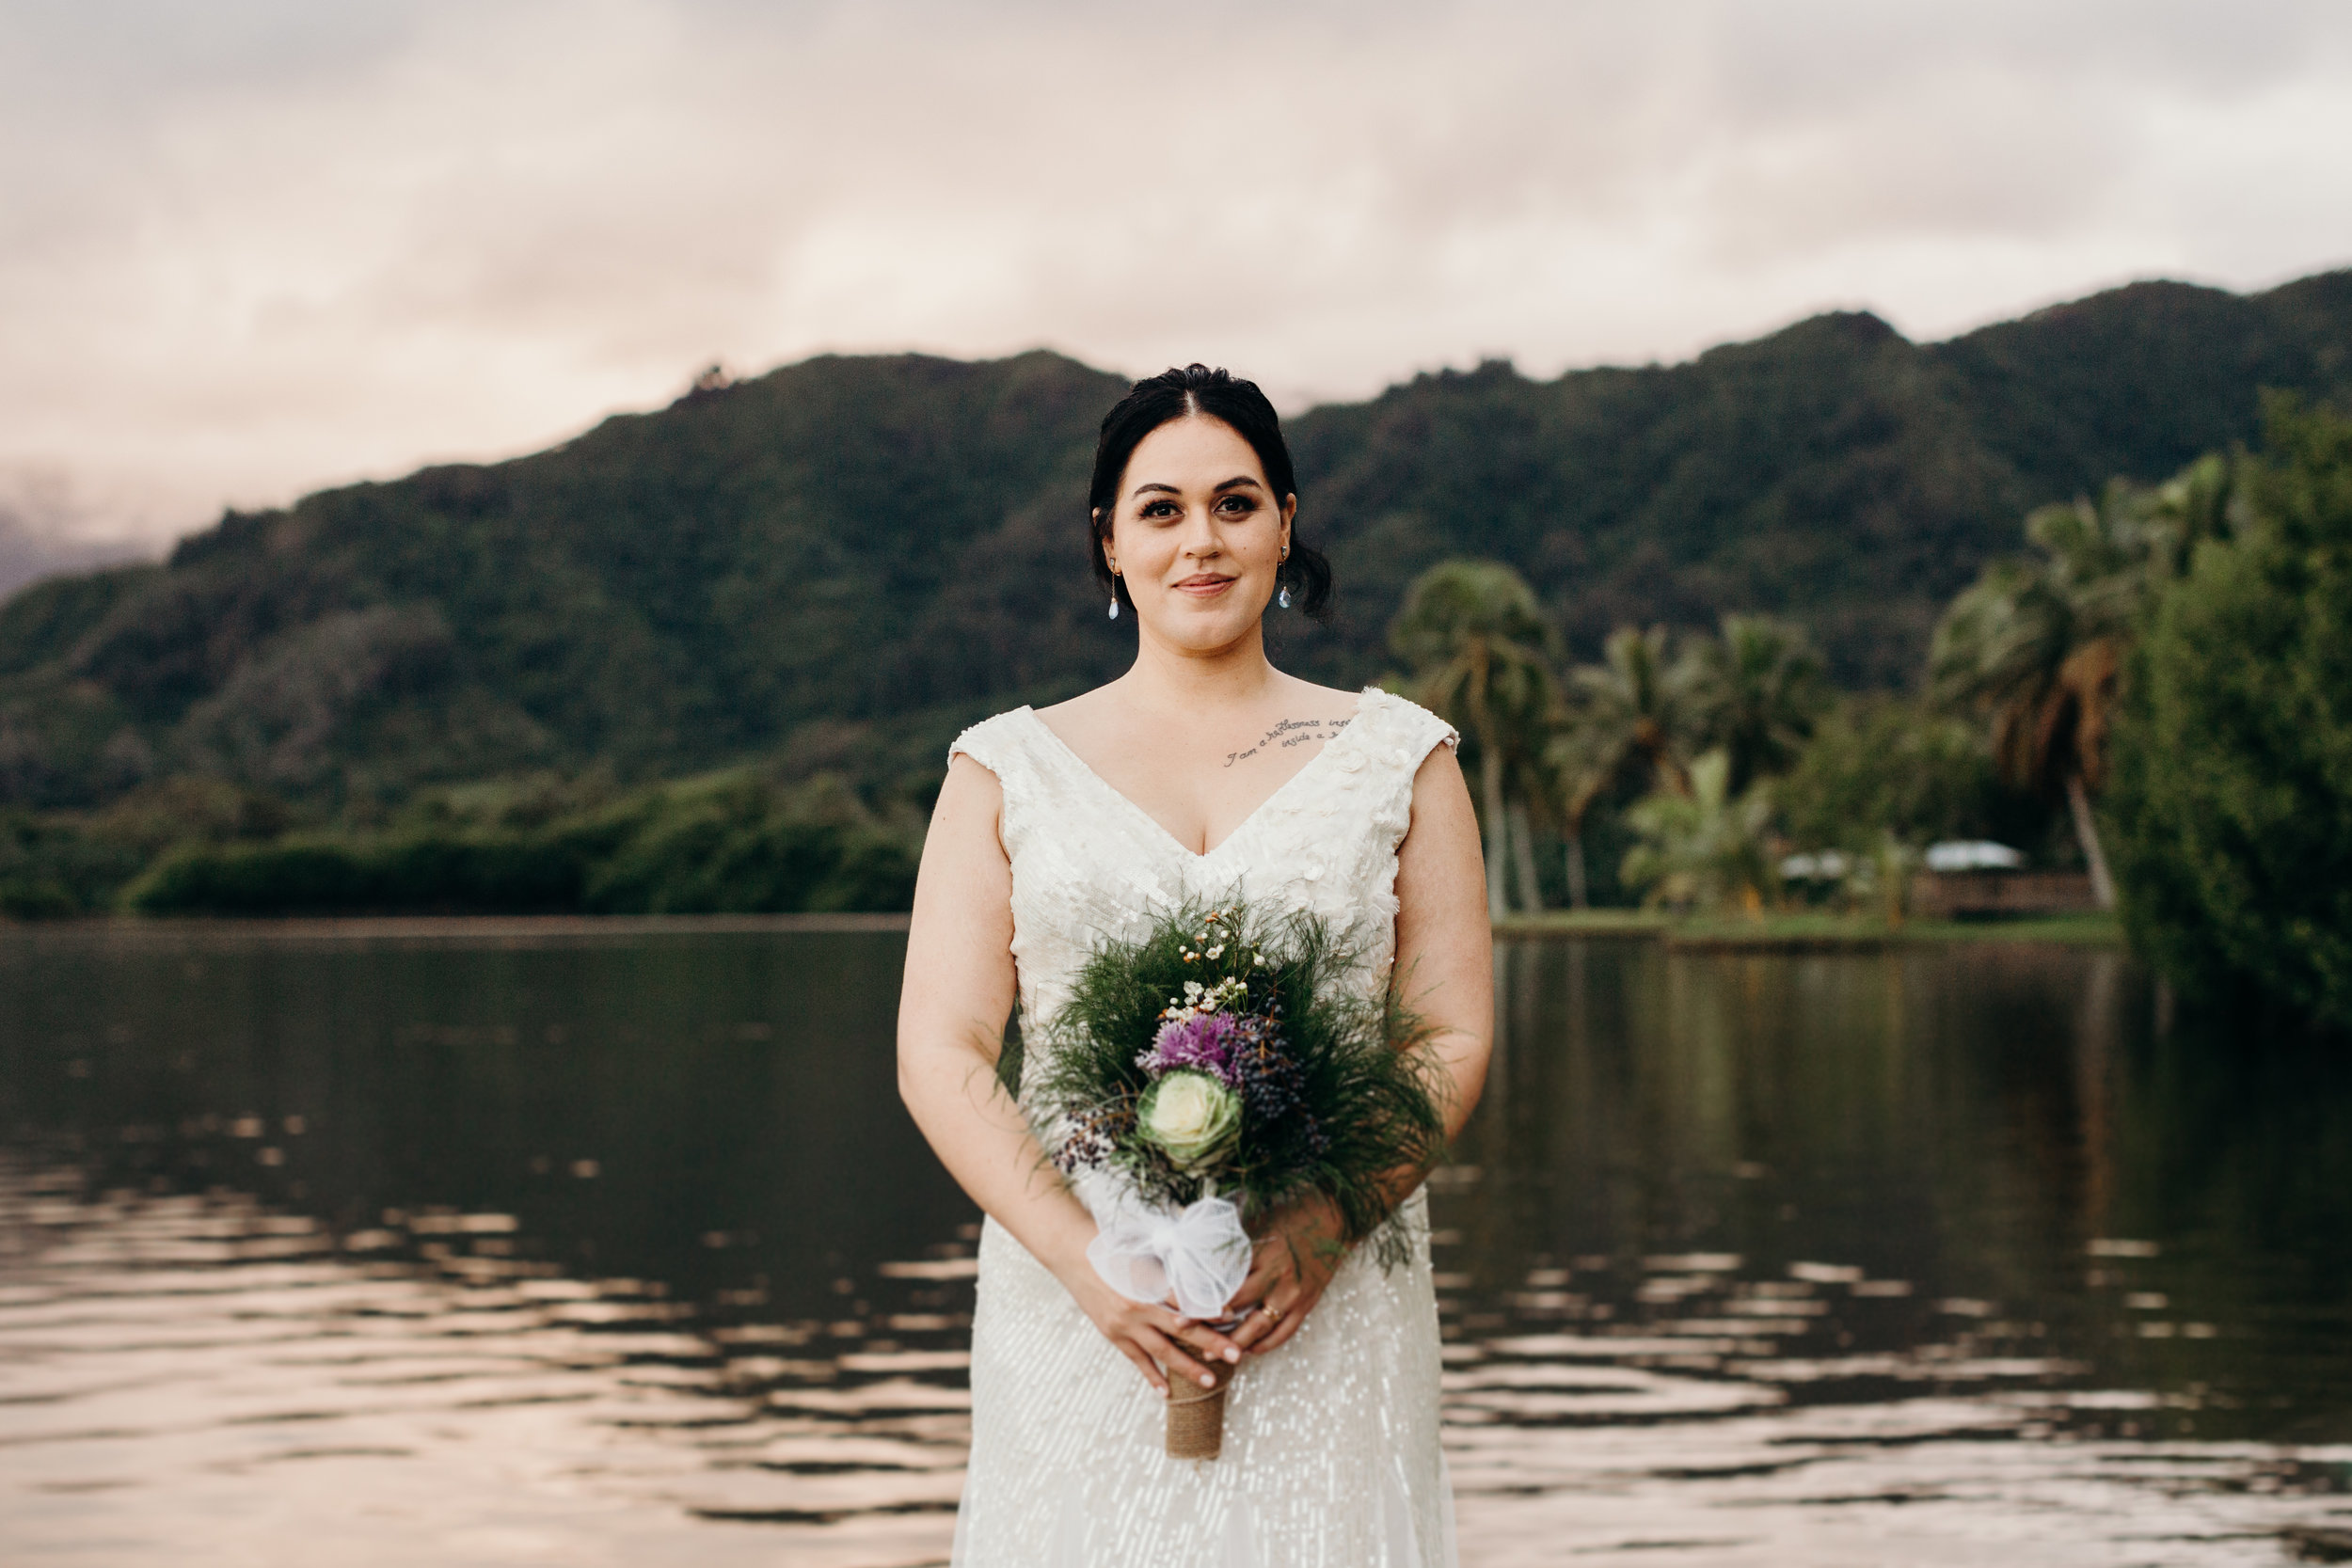 keani-bakula-hawaii-wedding-photographer-39.jpg